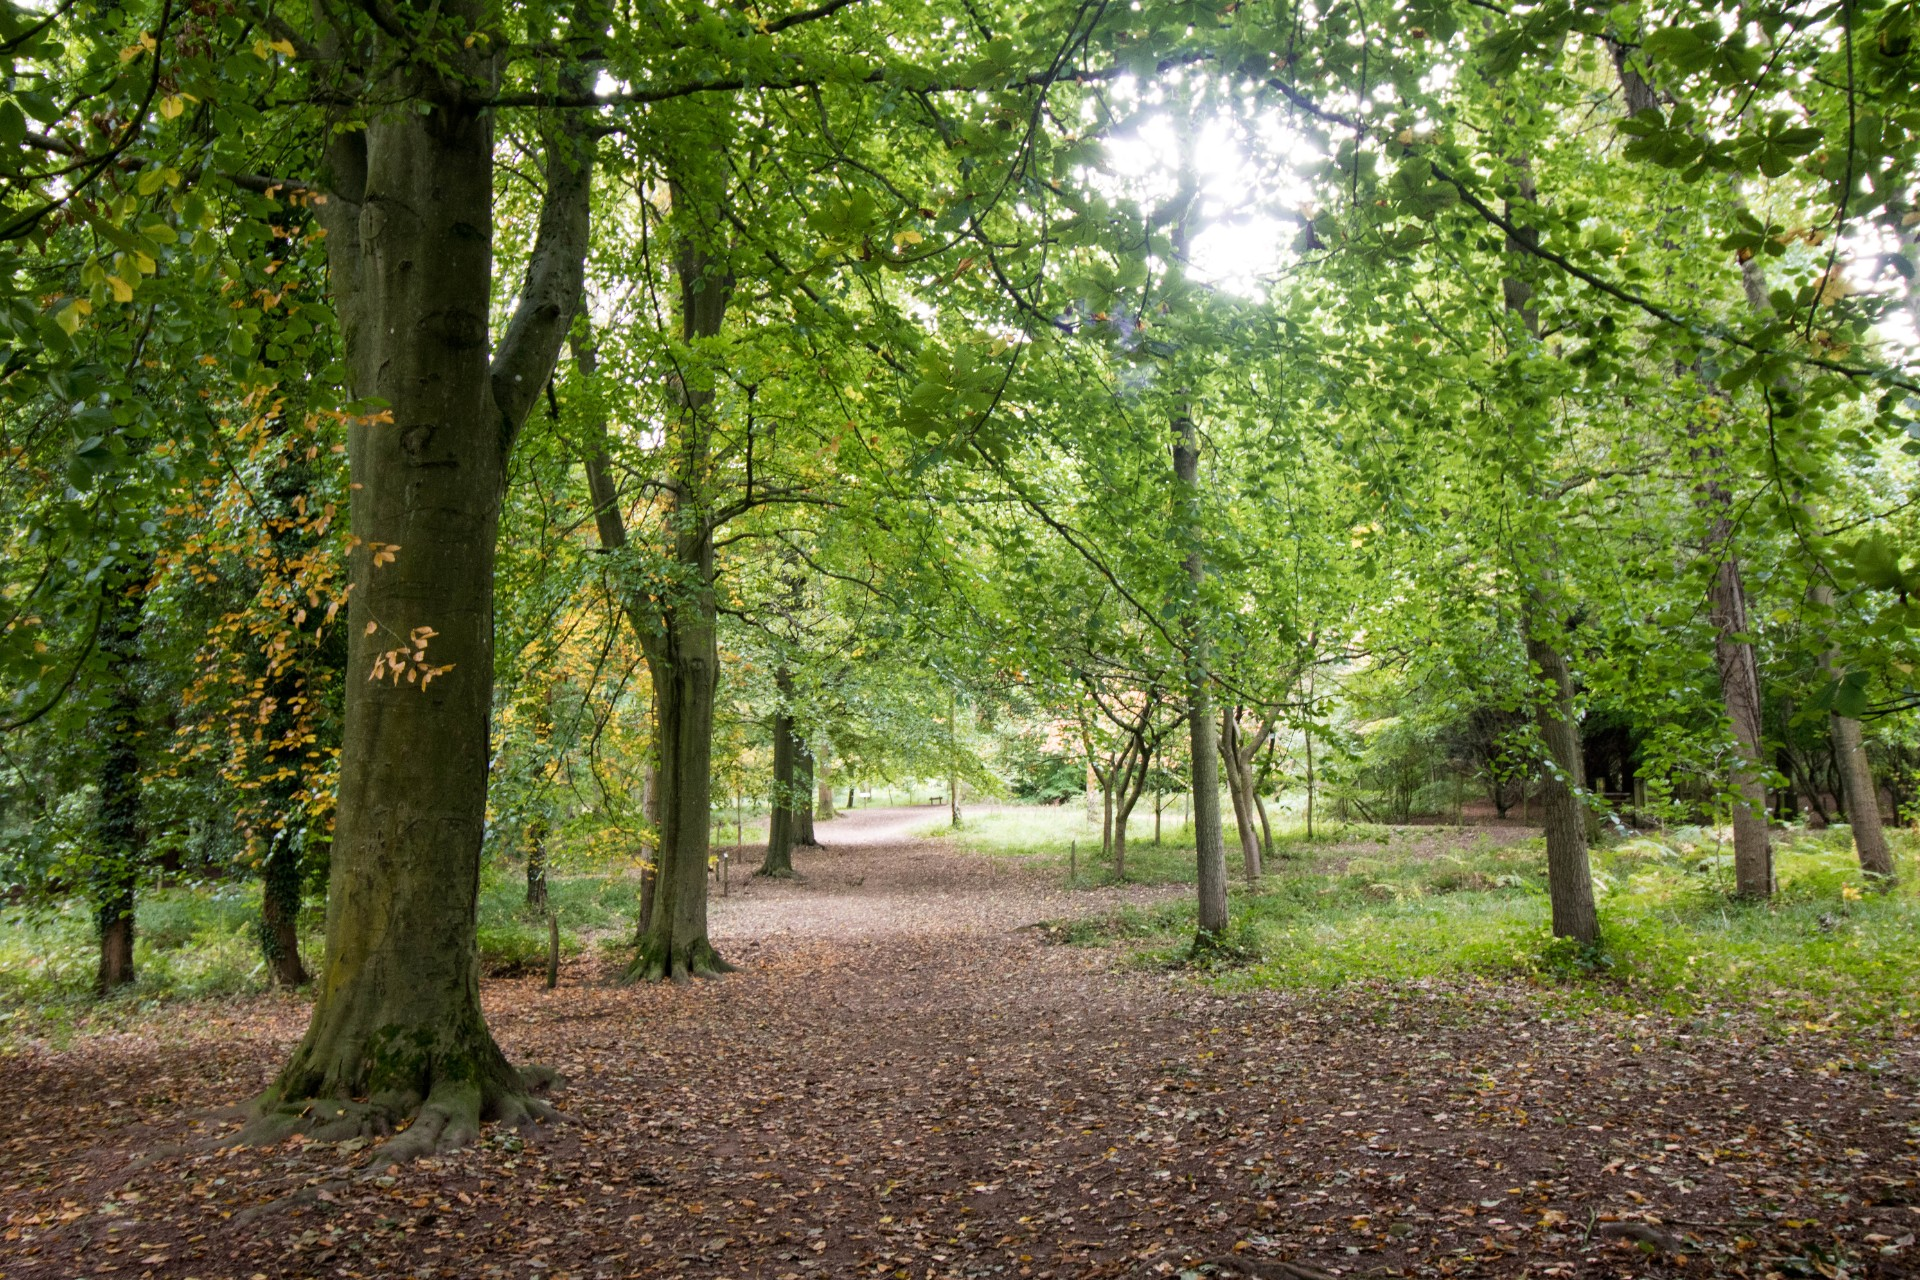 Queenswood Country Park Leominster English Woodland Forest Top 25 Things to Do in Herefordshire